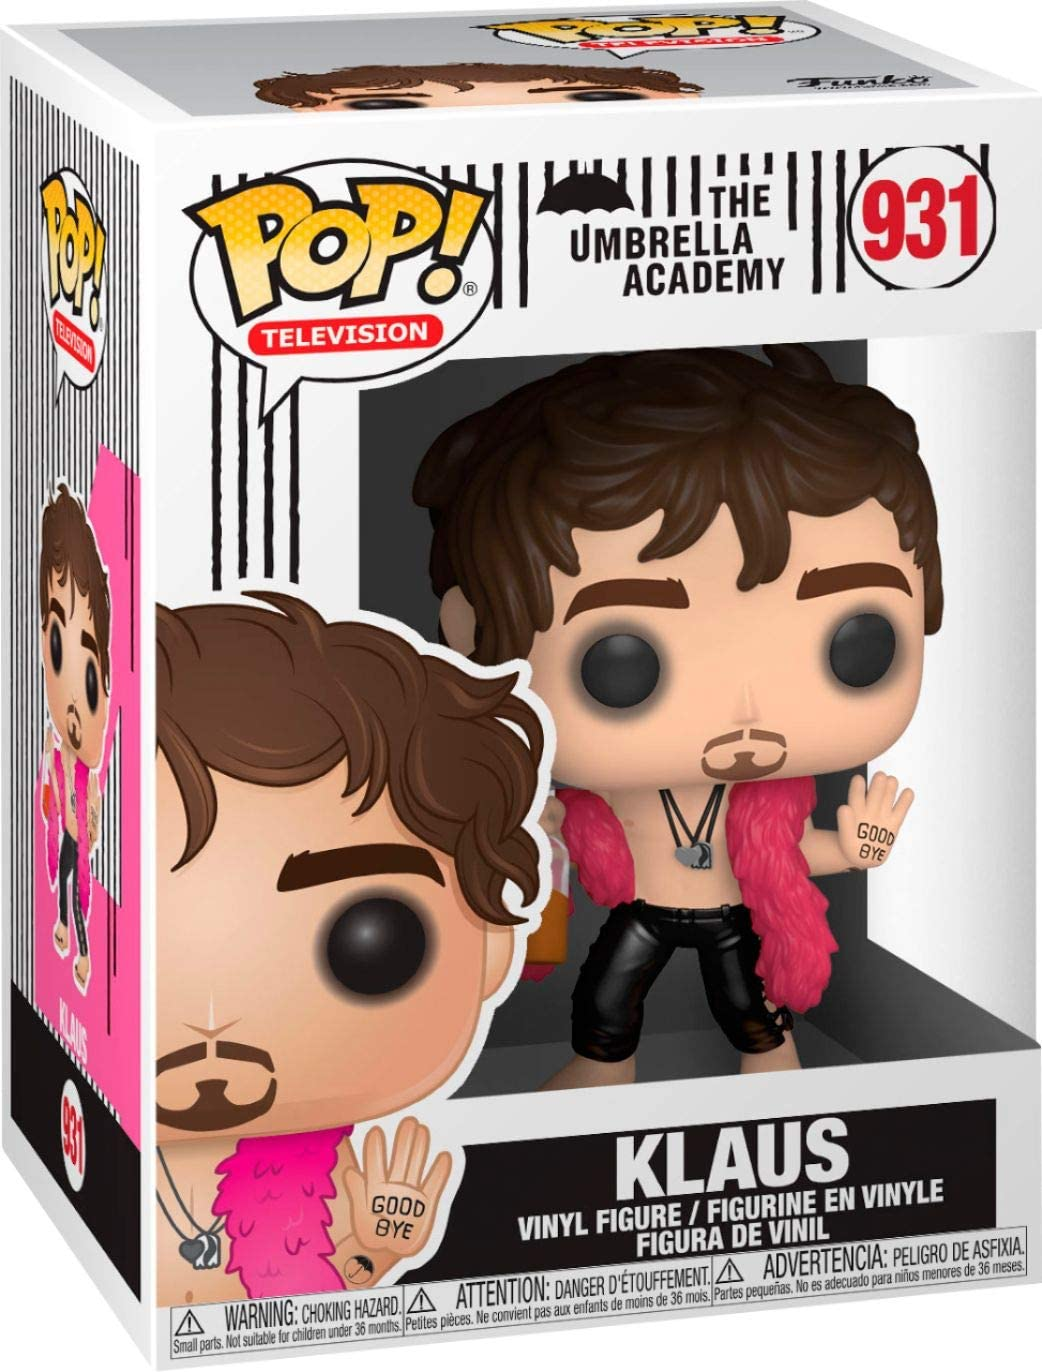 Bundled with a Pop Box Protector Case Klaus Hargreeves #931 Vinyl Figure The Umbrella Academy Pop TV